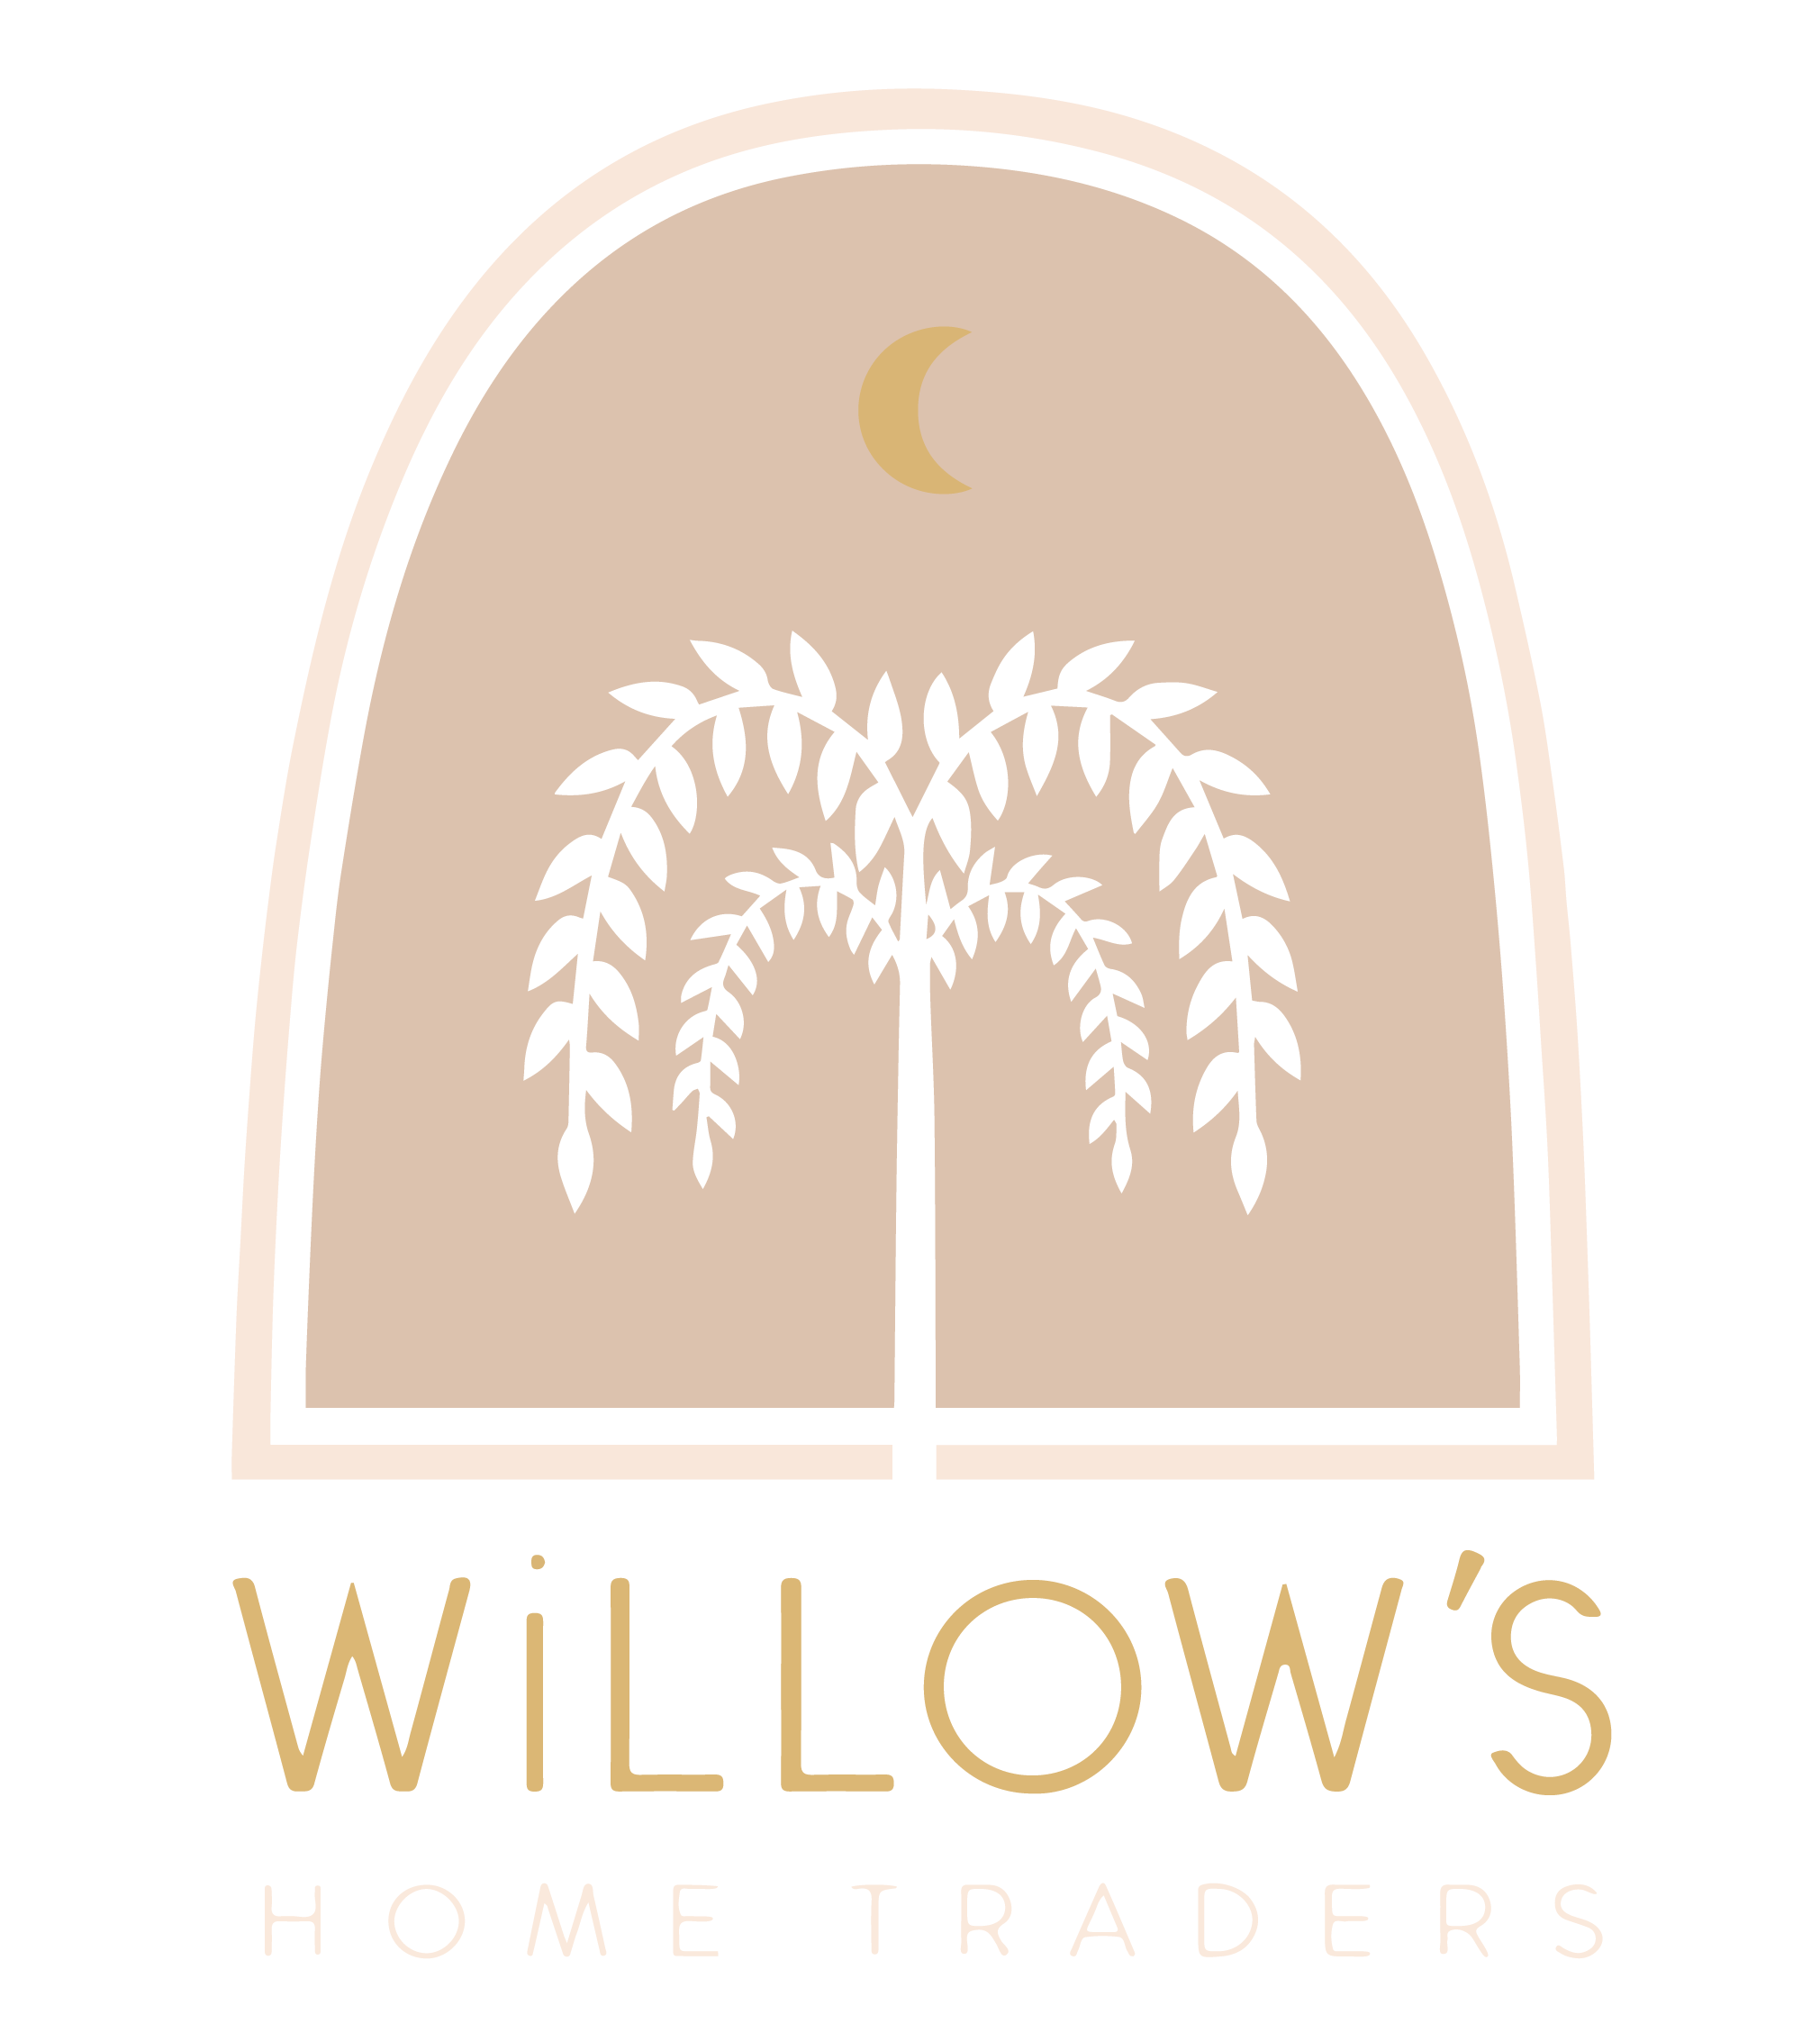 WillowsHomeTraders_Colour-01.png